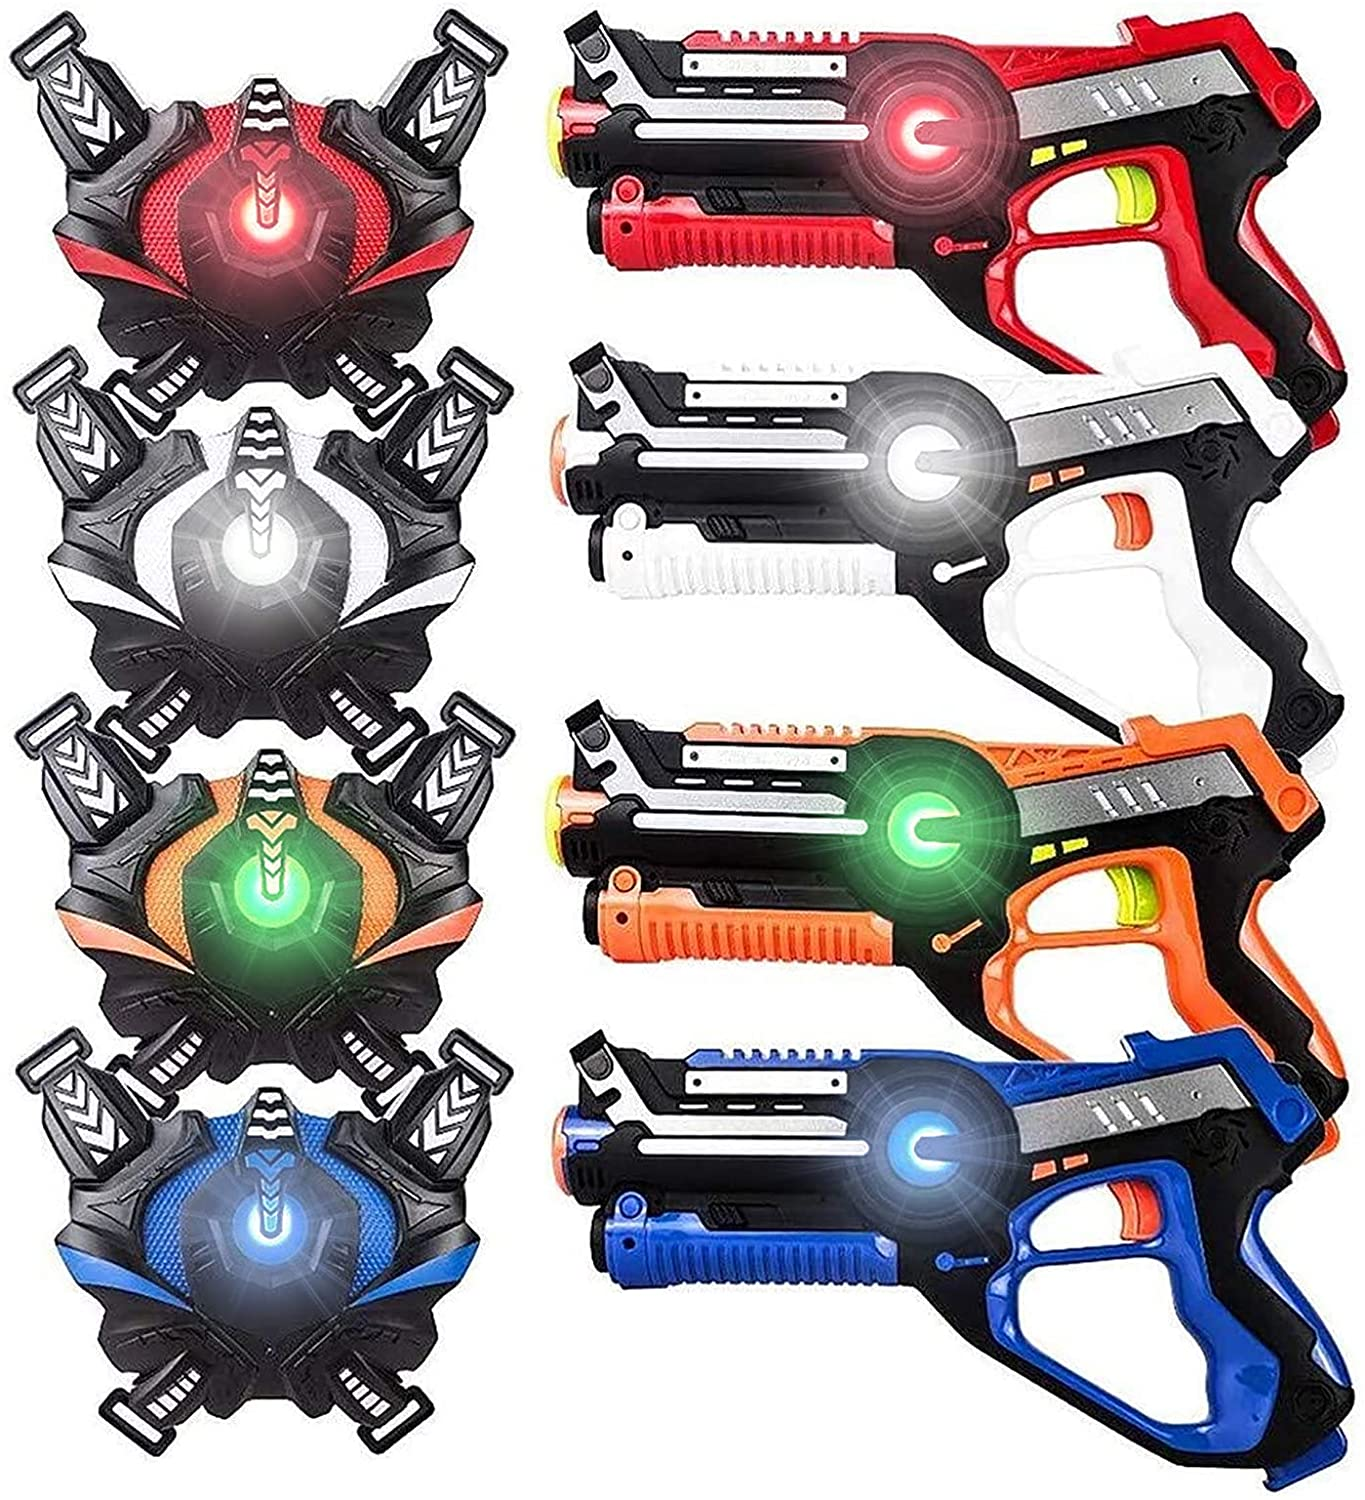 Large Laser Tag Equipment Sets with Gun and Vest Laser Tag Guns For Adults & Kids